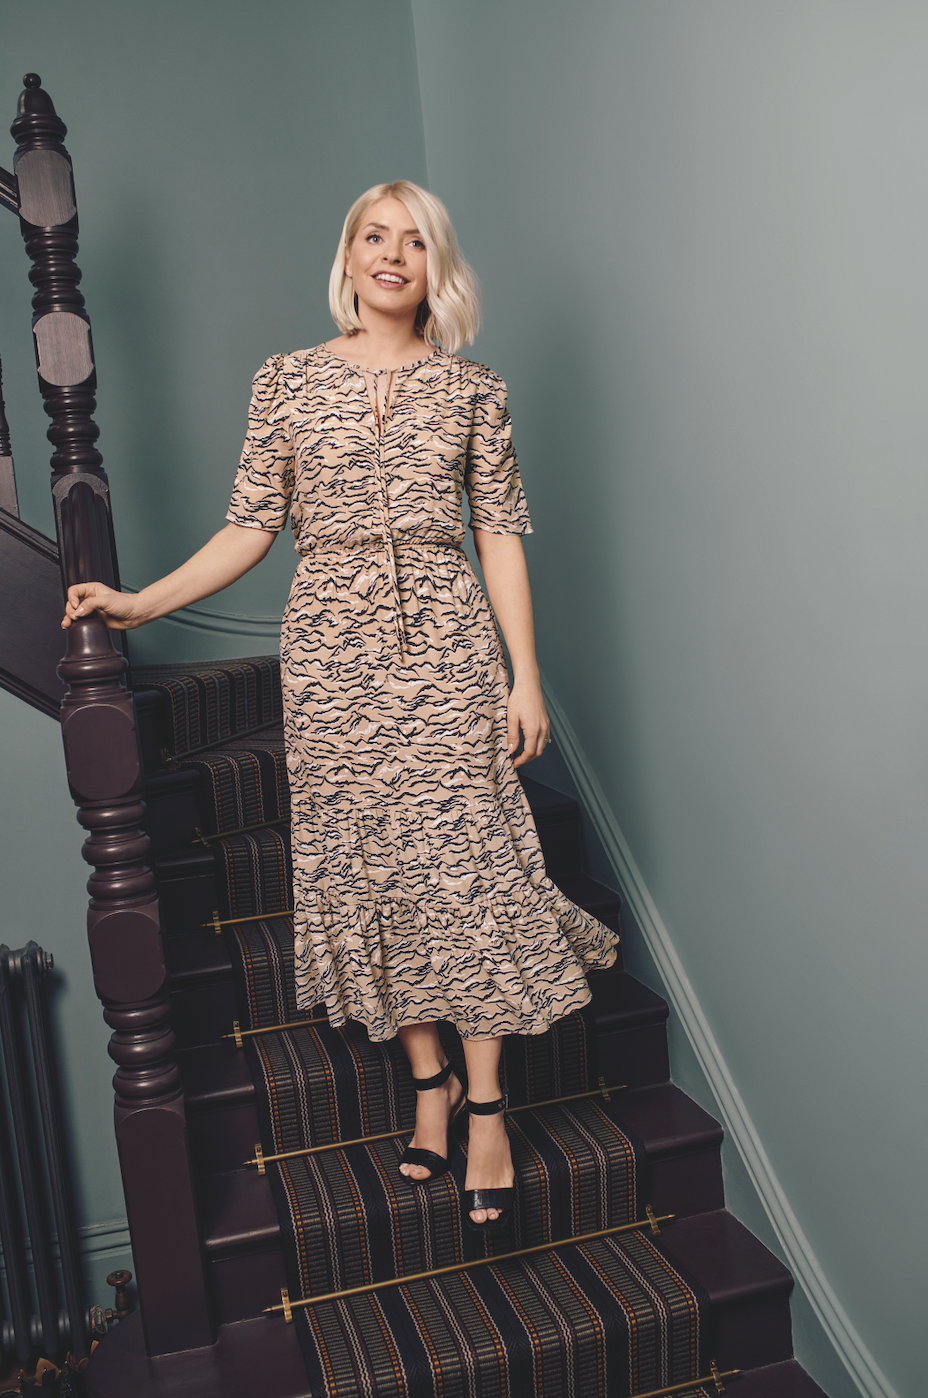 Holly's latest affordable M&S dress is sure to be a hit. (Marks & Spencer)